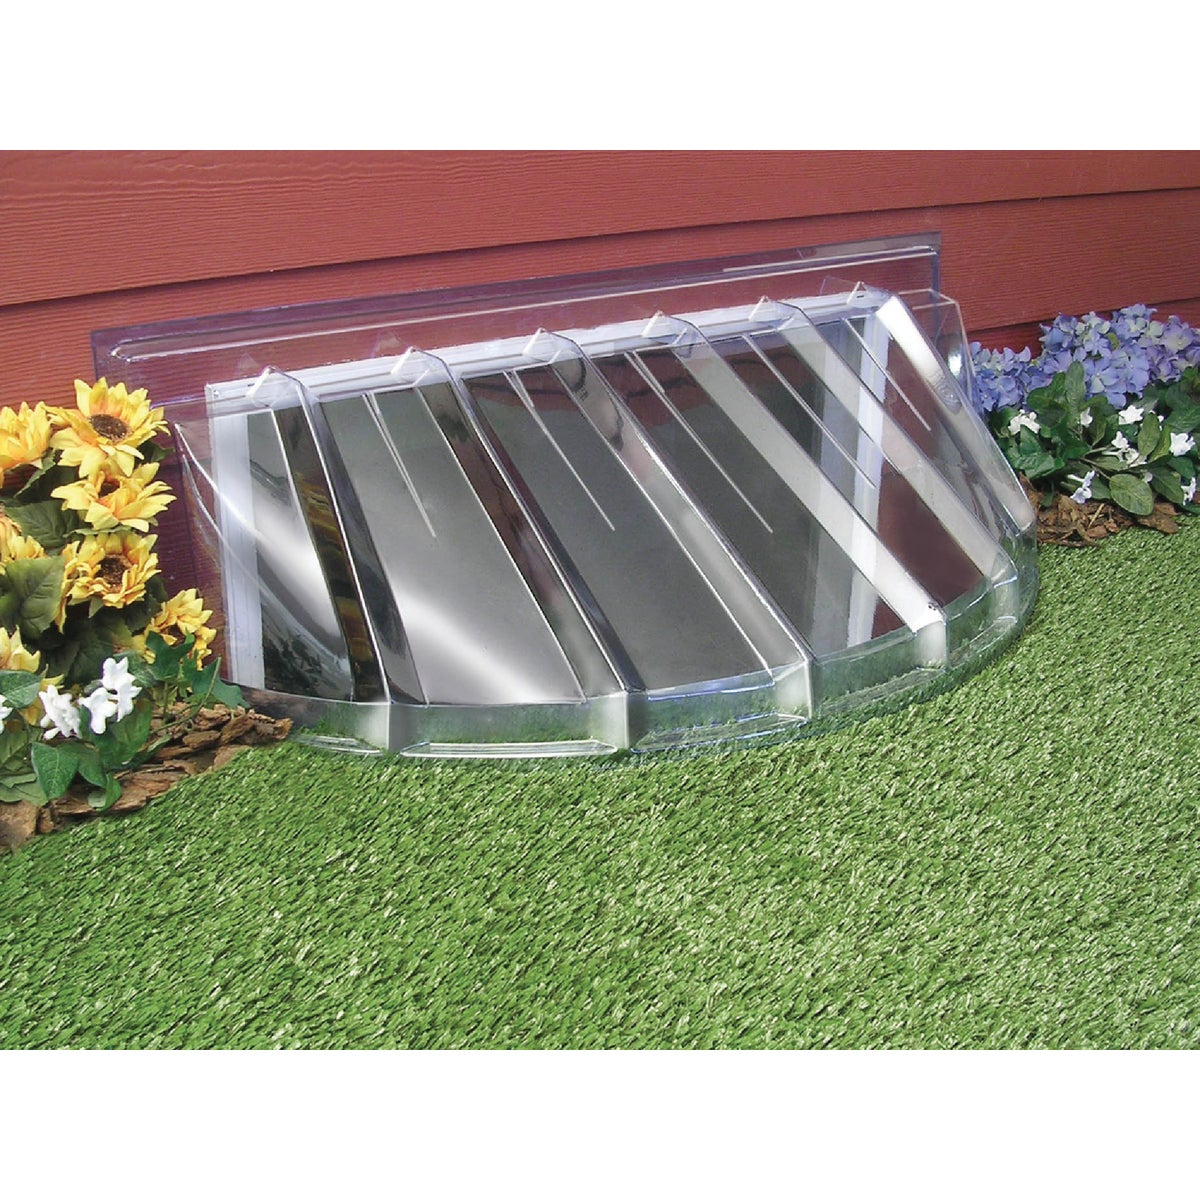 42X18 WINDOW WELL COVER